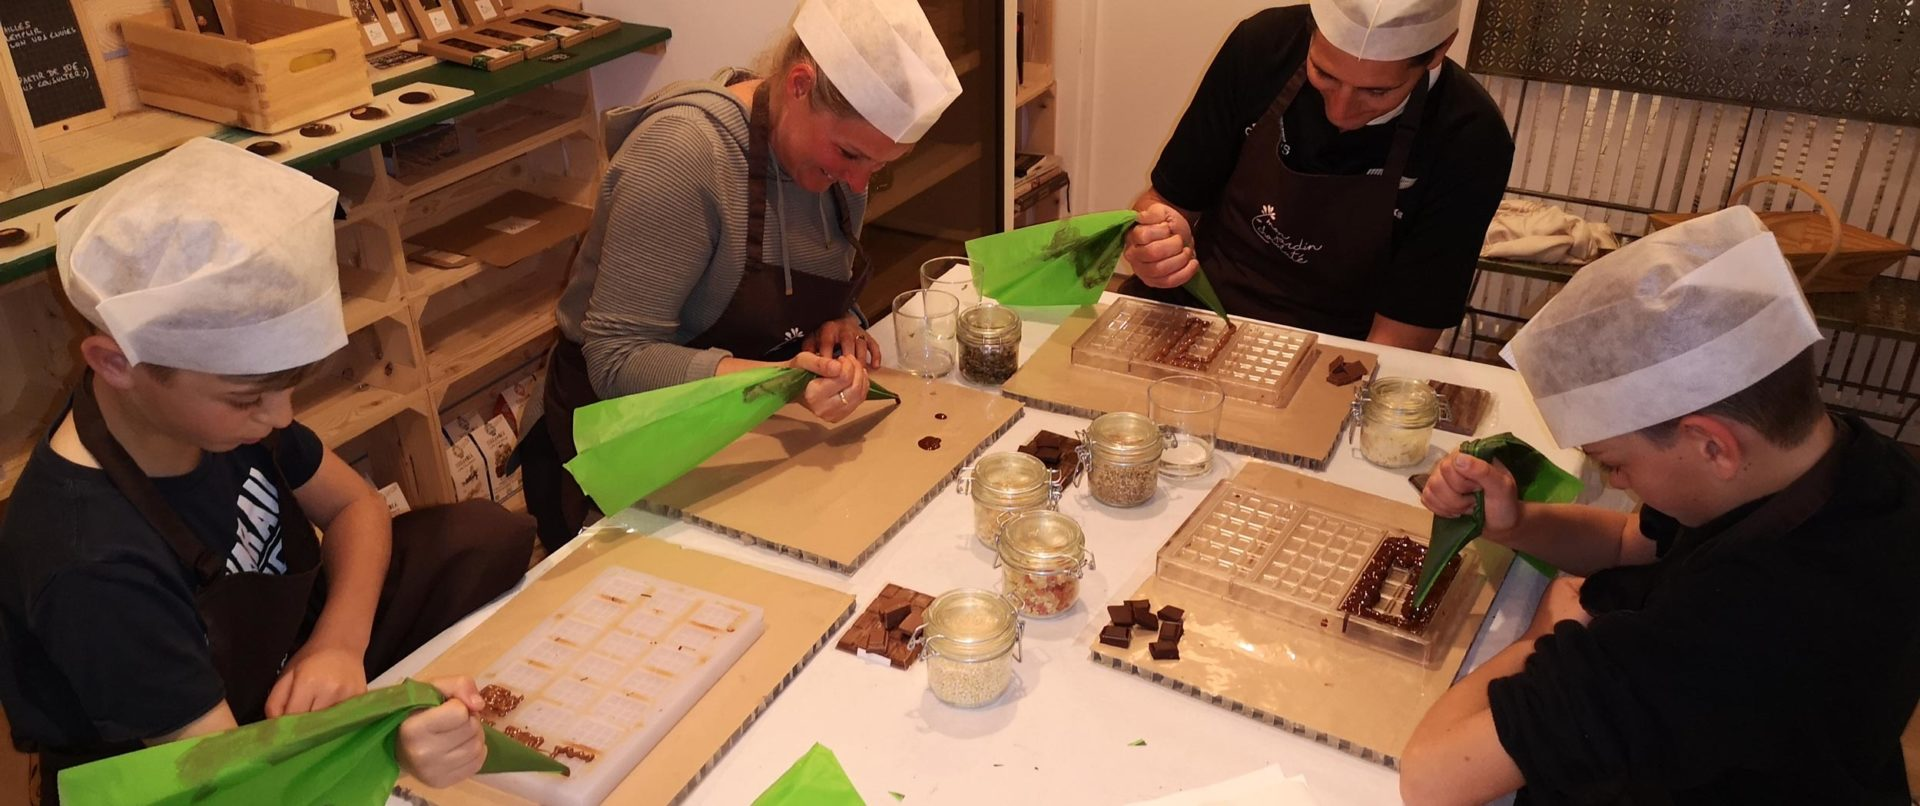 chocolate-making-course-family-experience-fun-paris